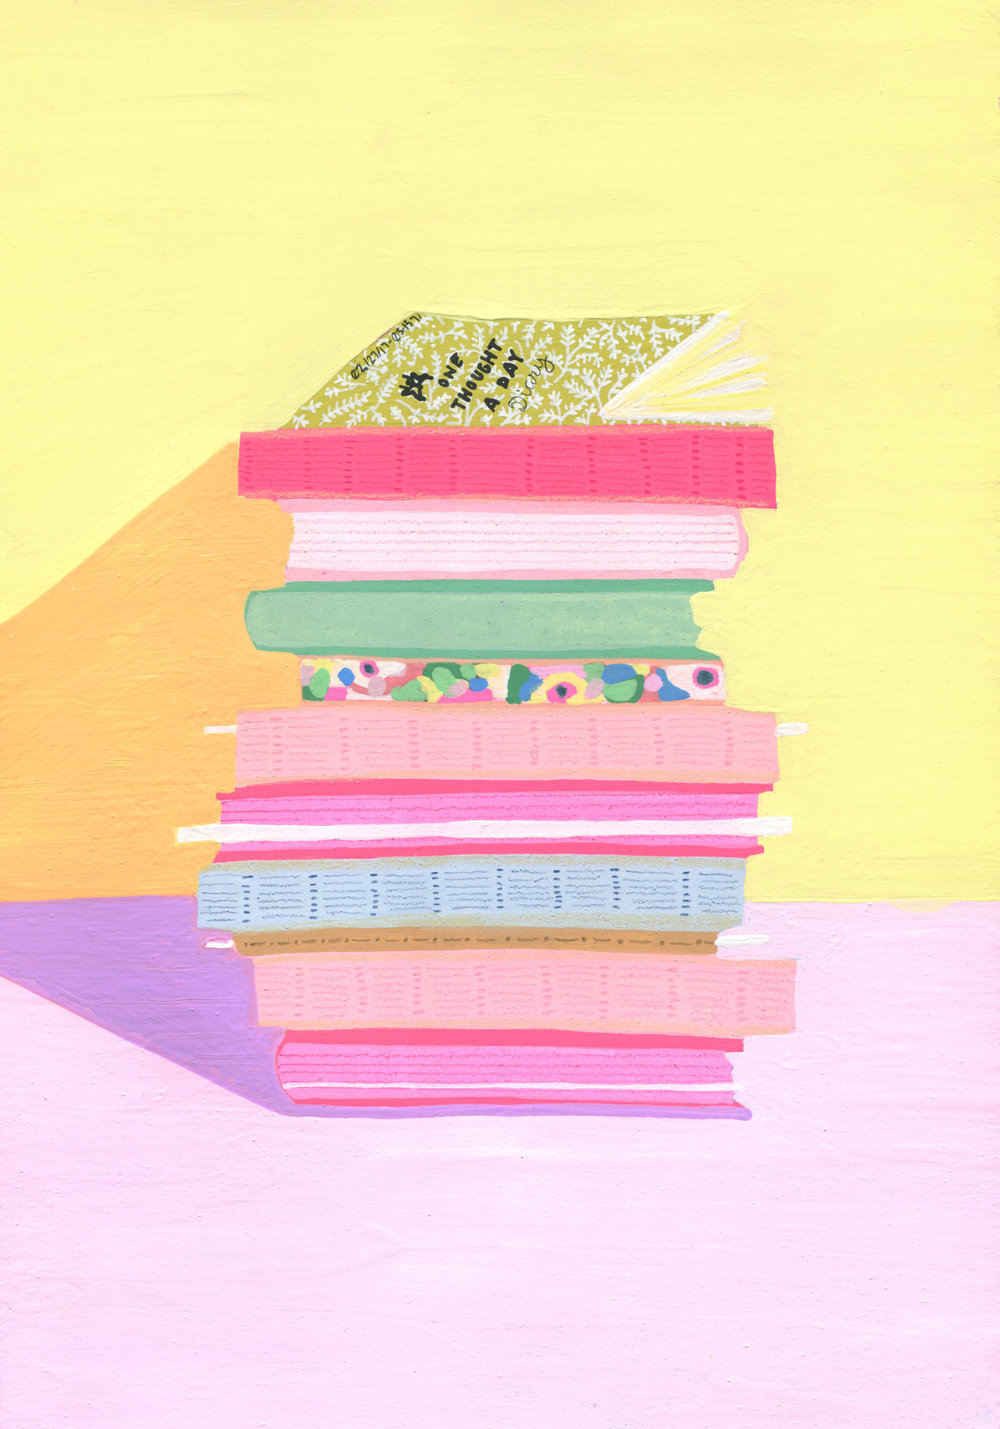 A painting that I made of my growing pile of journals.